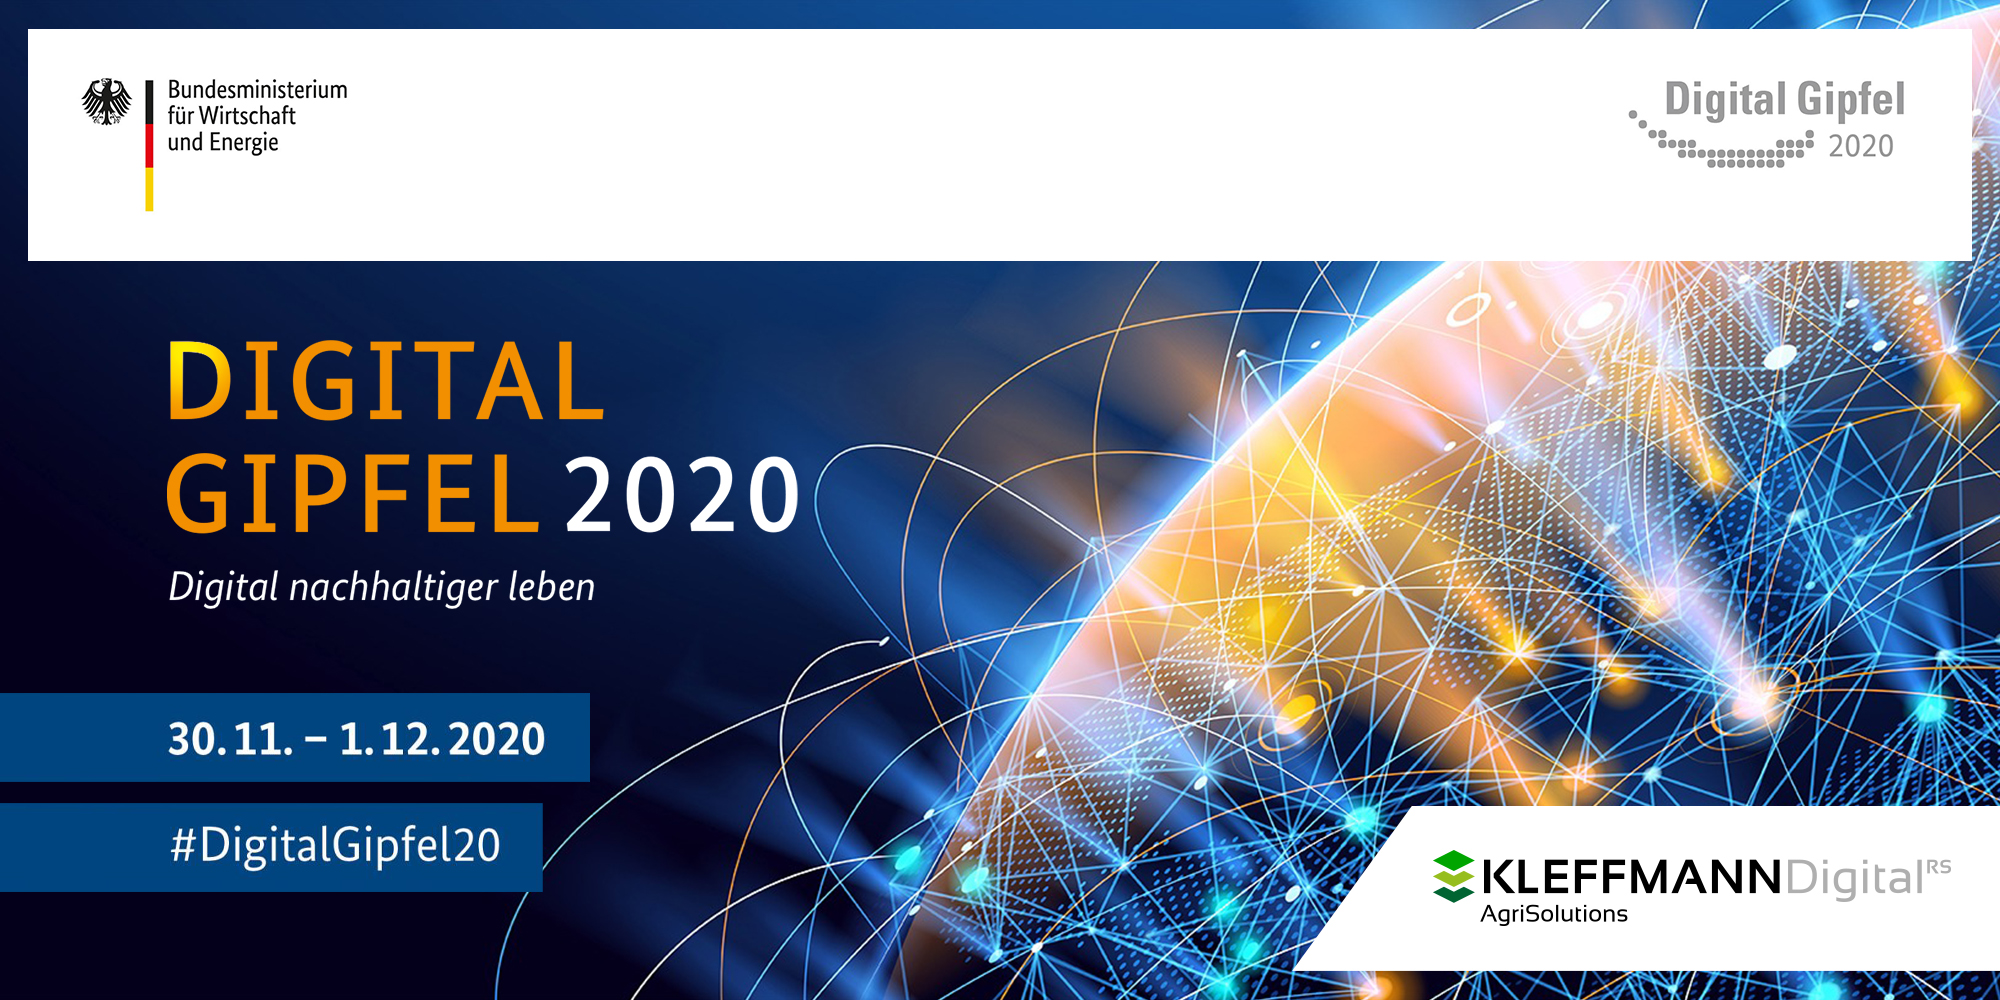 Speaker at the Digital Summit 2020